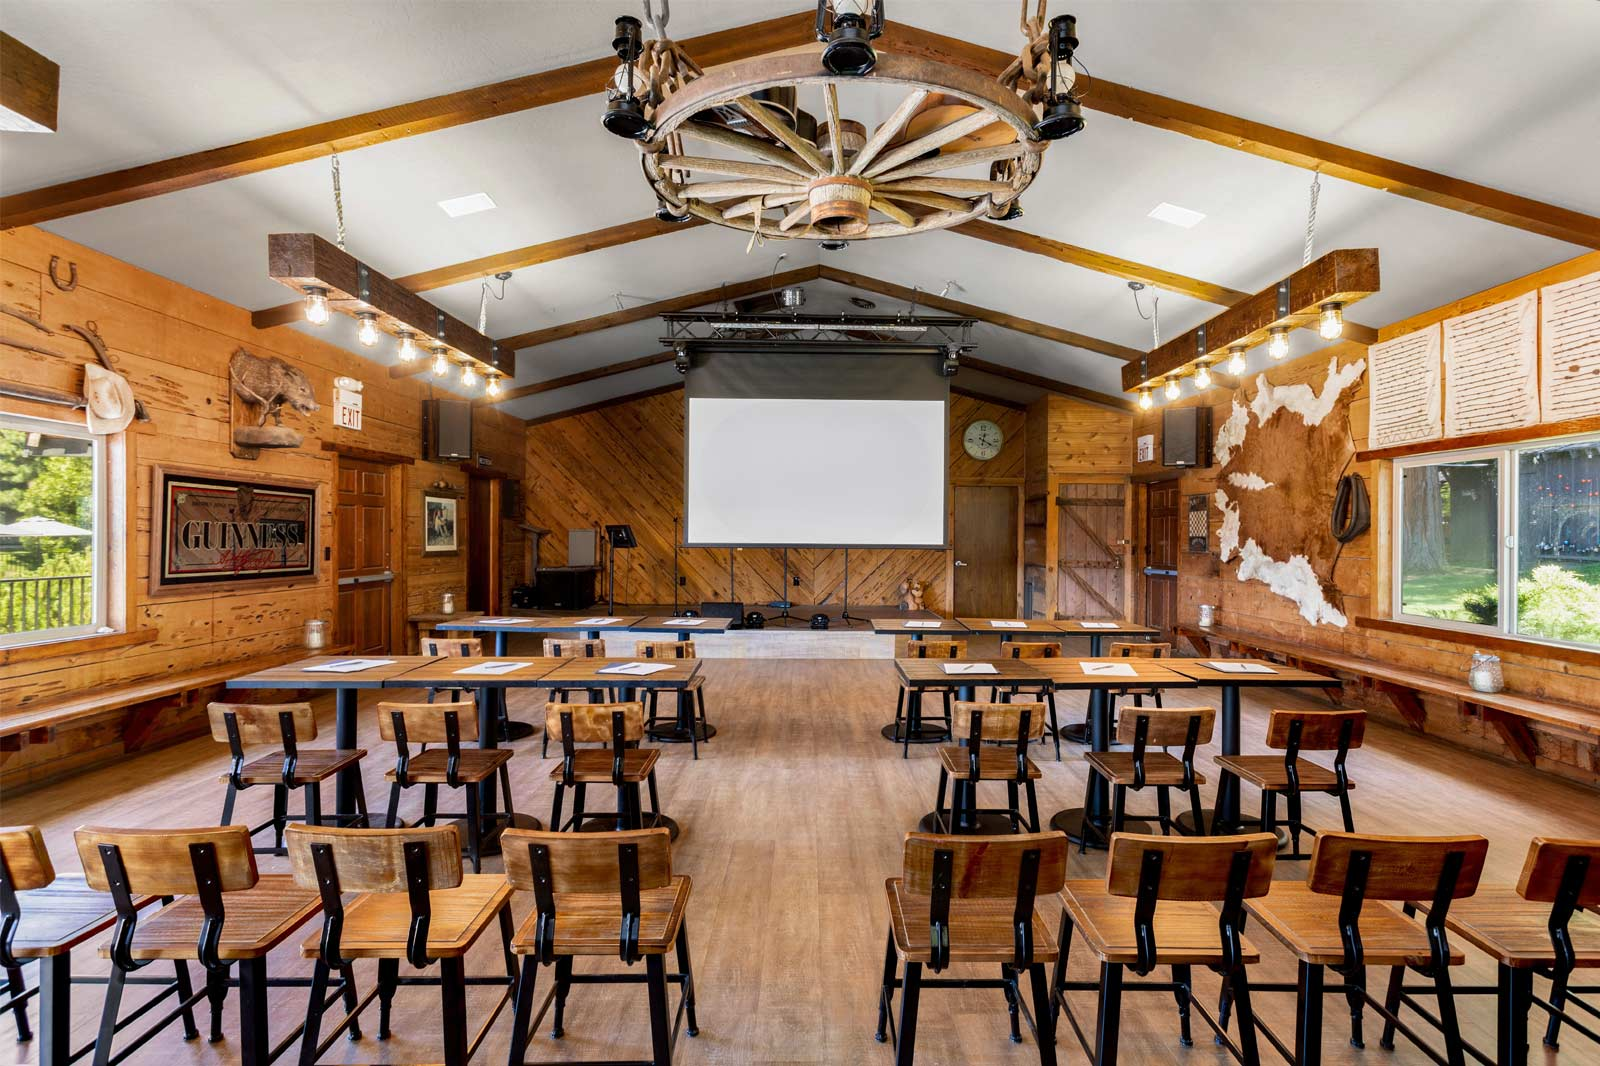 A meeting room inside a rustic ranch room with a presentation screen up front